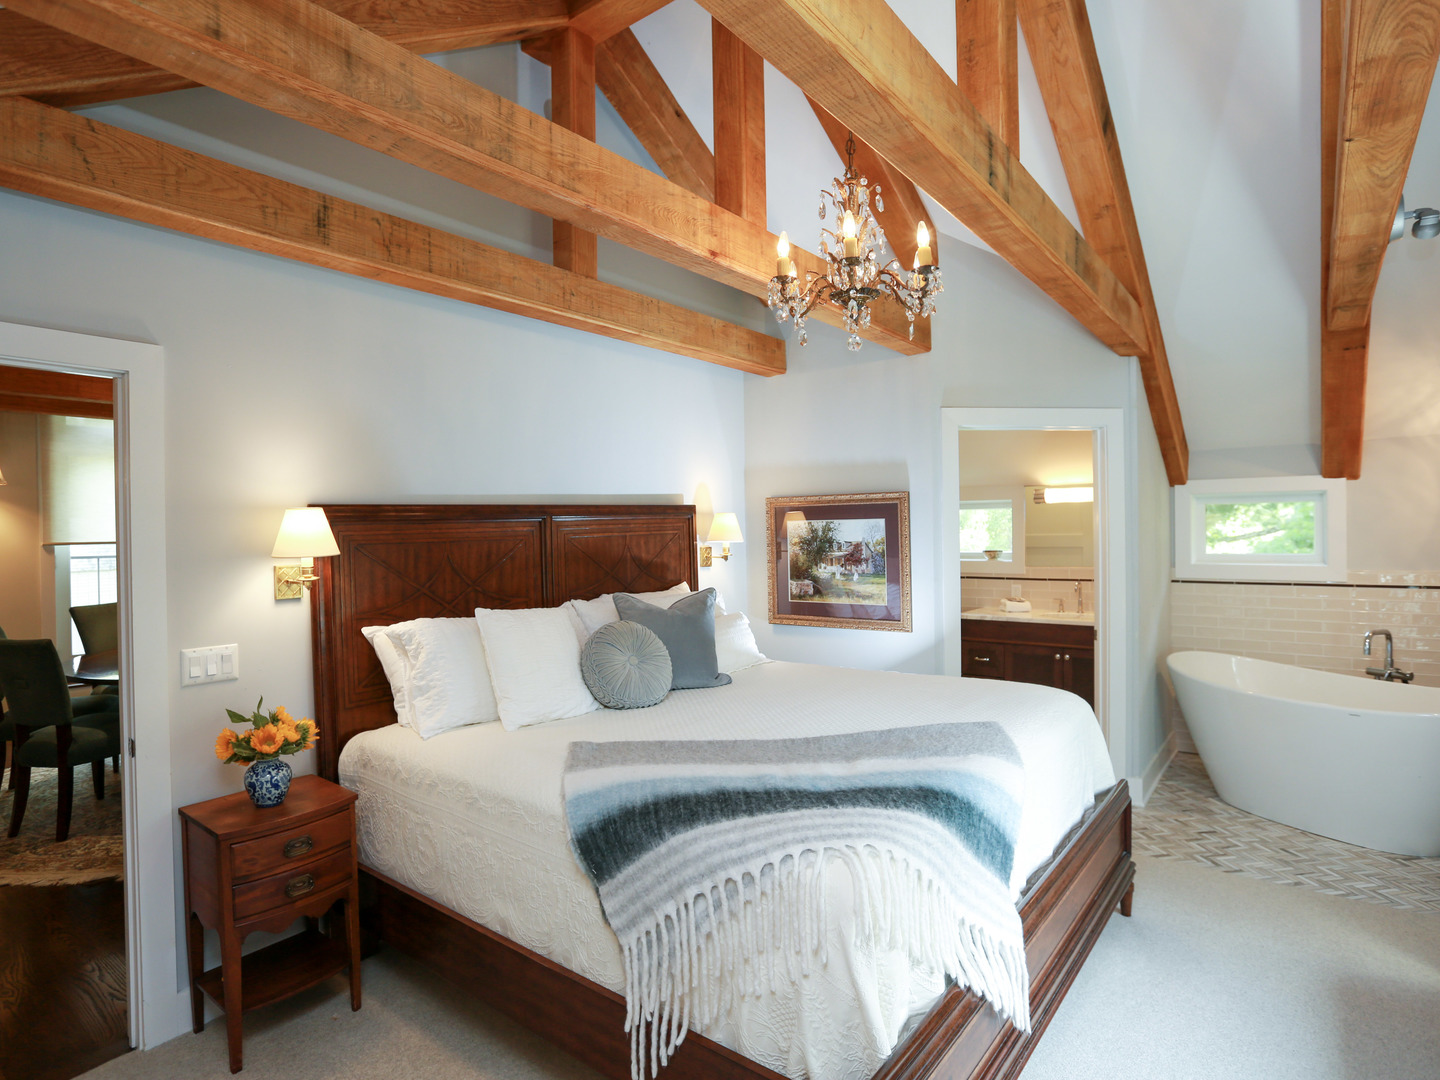 A bedroom with a bed in a room at Woolverton Inn.